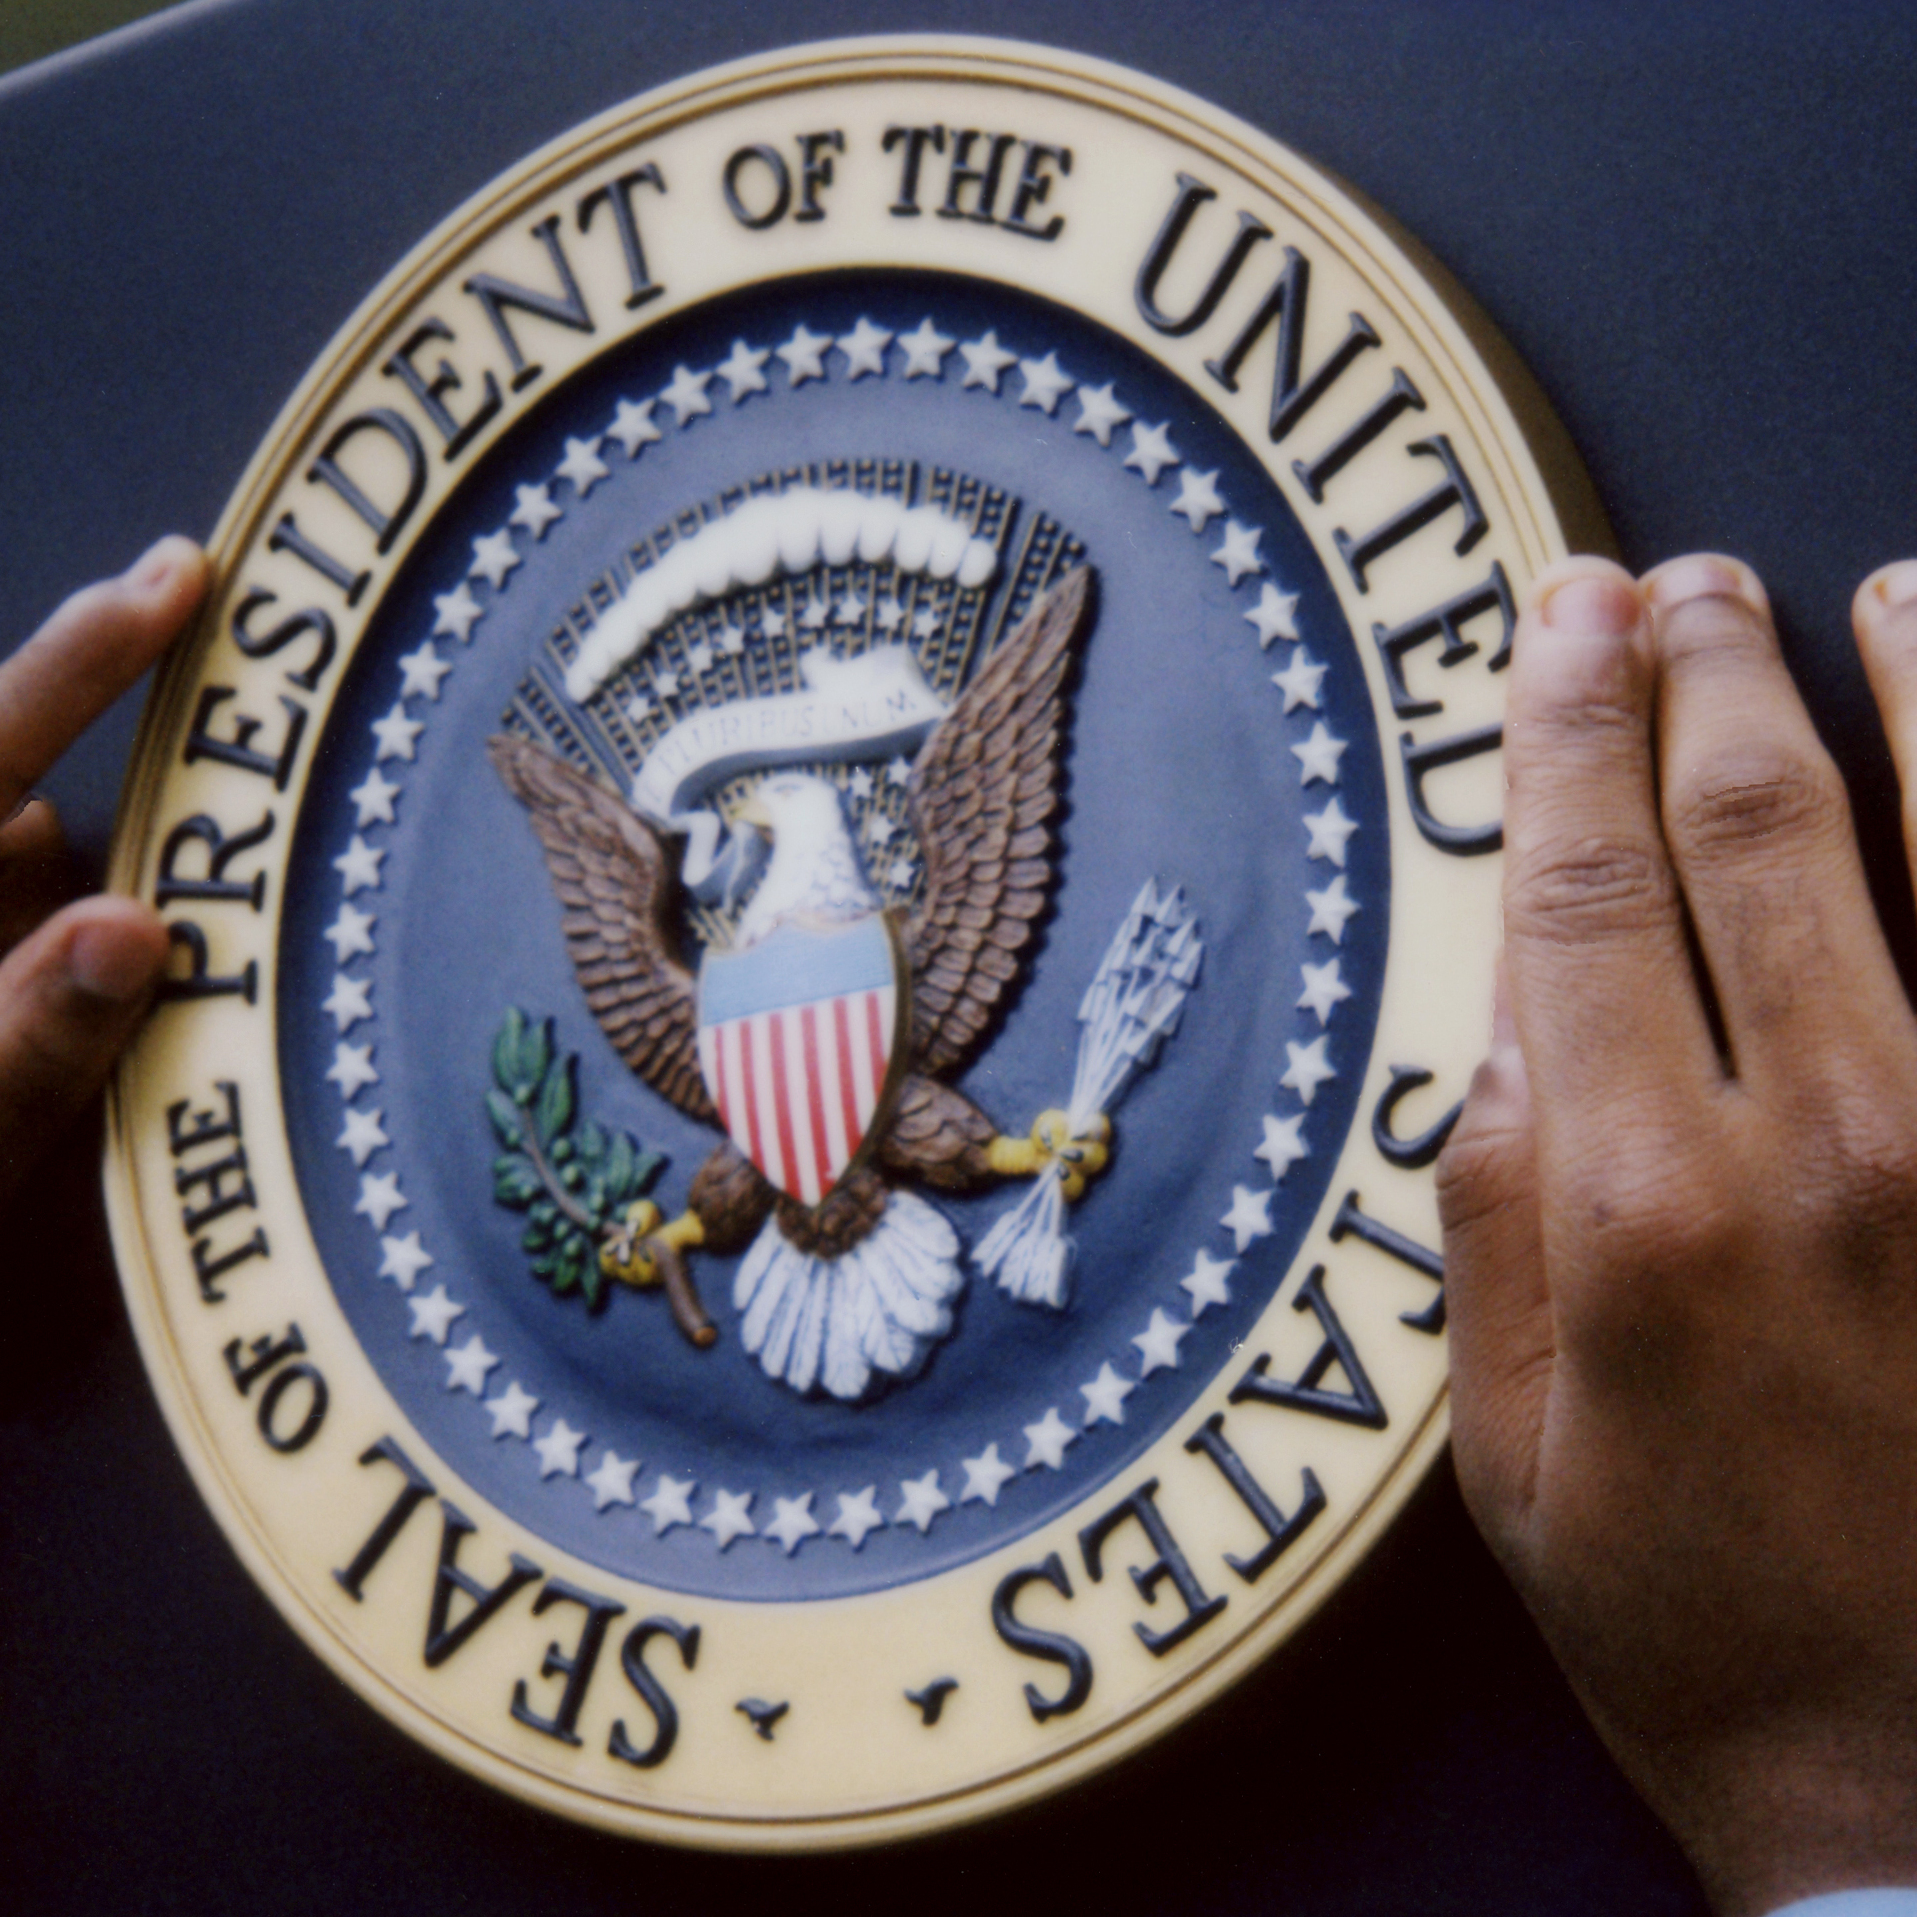 When a president stands at a podium, the presidential seal is right there.